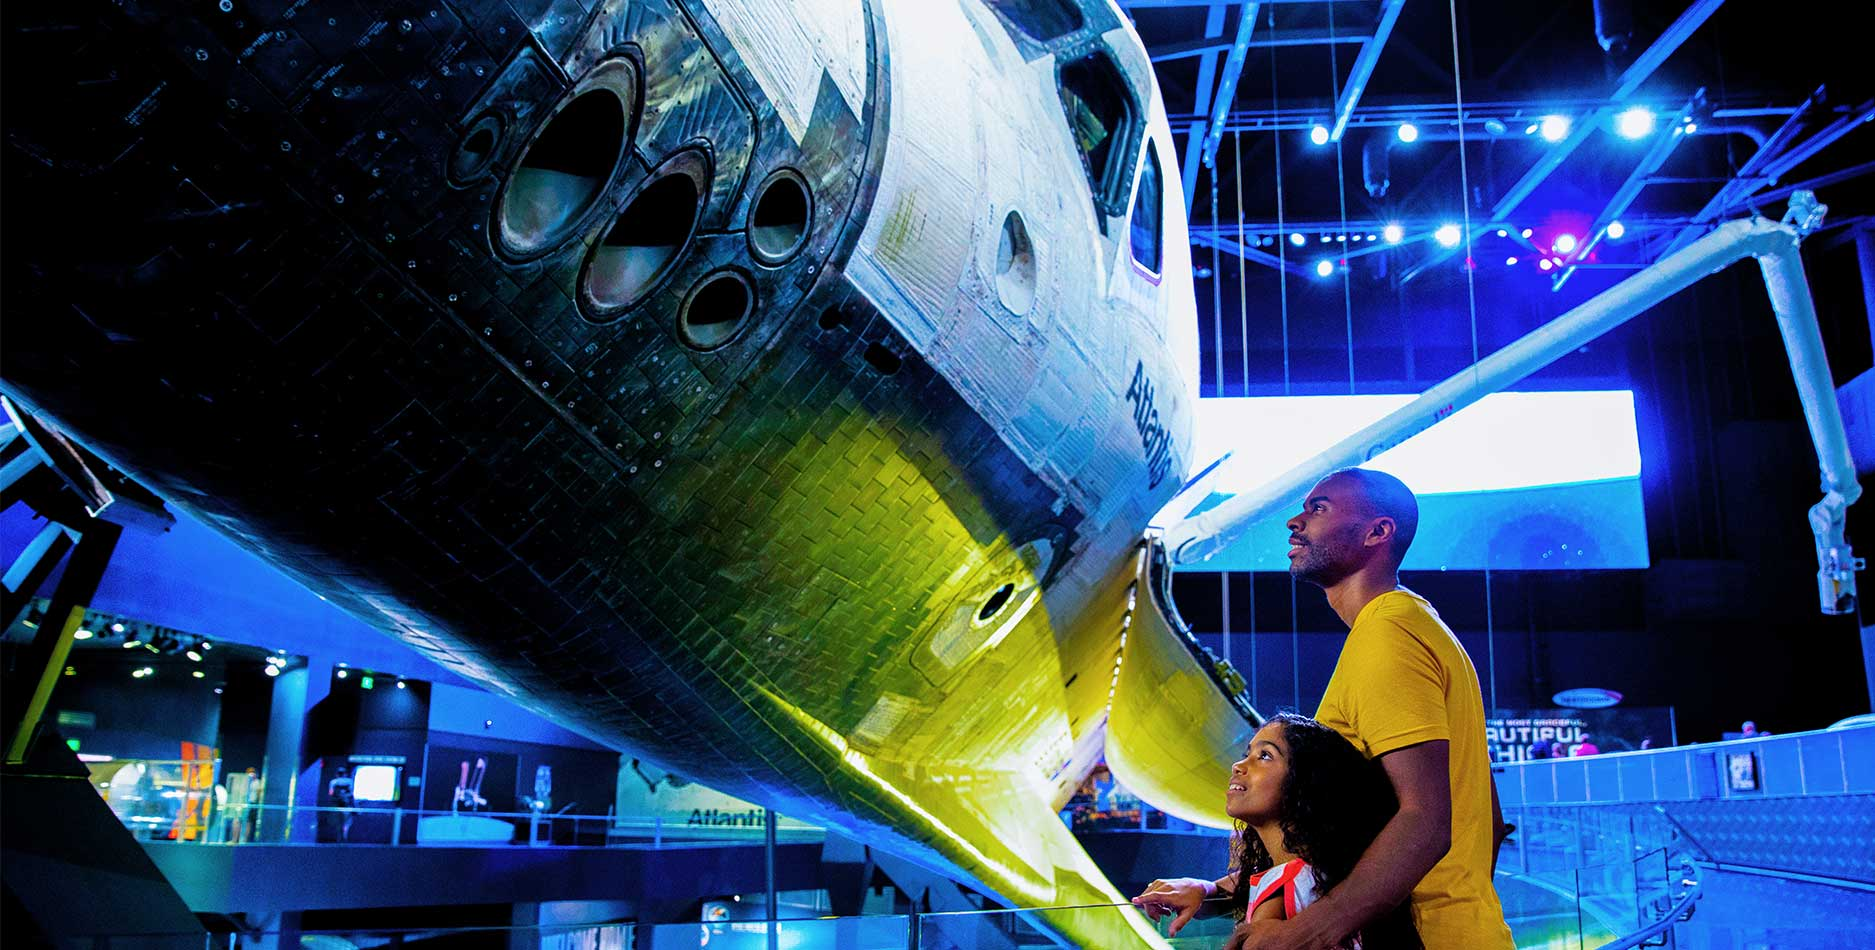 Father and daughter look up at space shuttle Atlantis